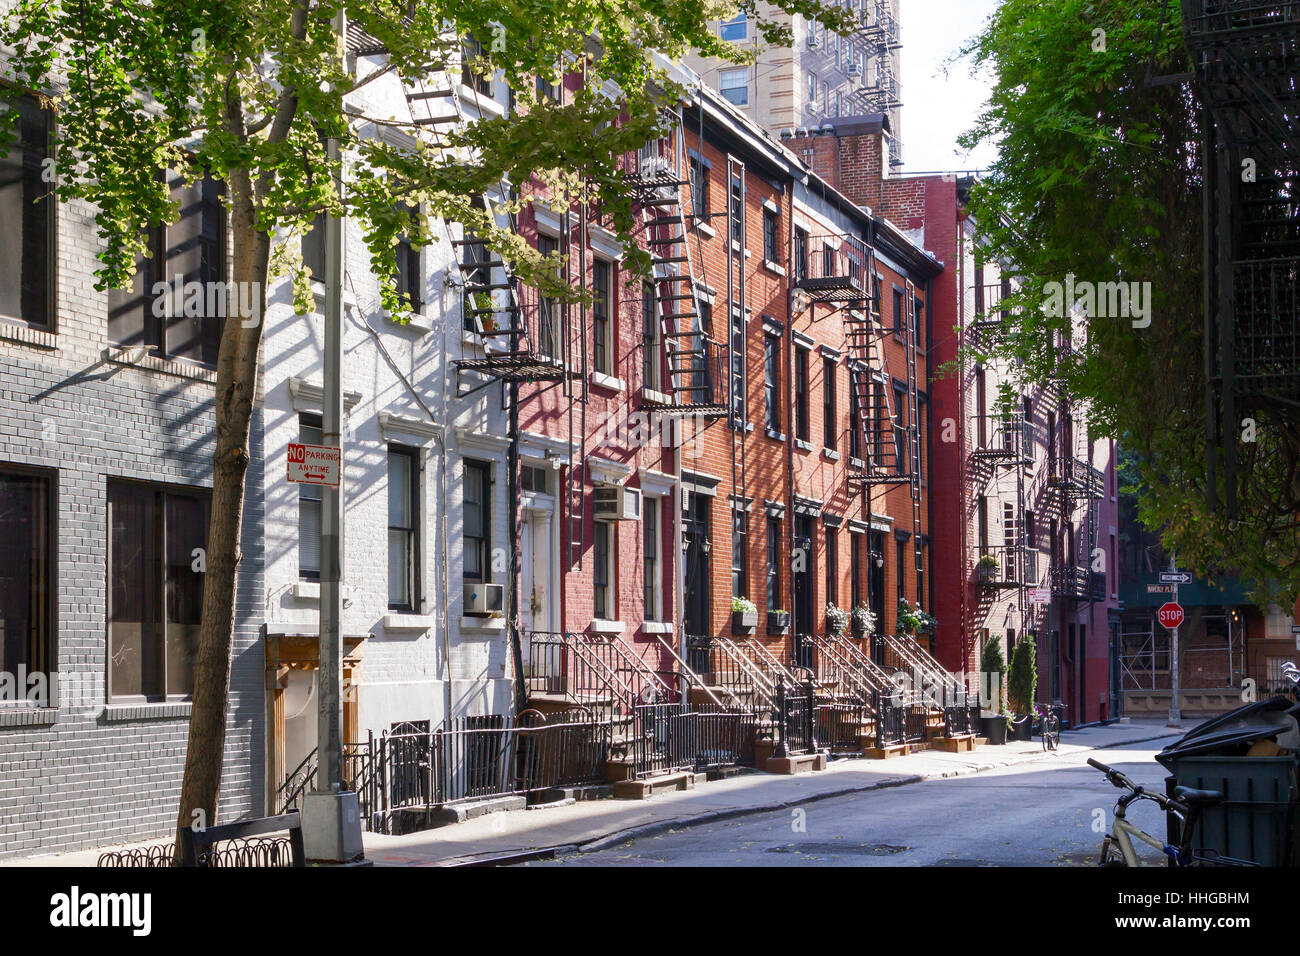 Sunshine on the trees, sidewalks, and historic buildings of Gay Street in the Greenwich Village neighborhood of - Stock Image